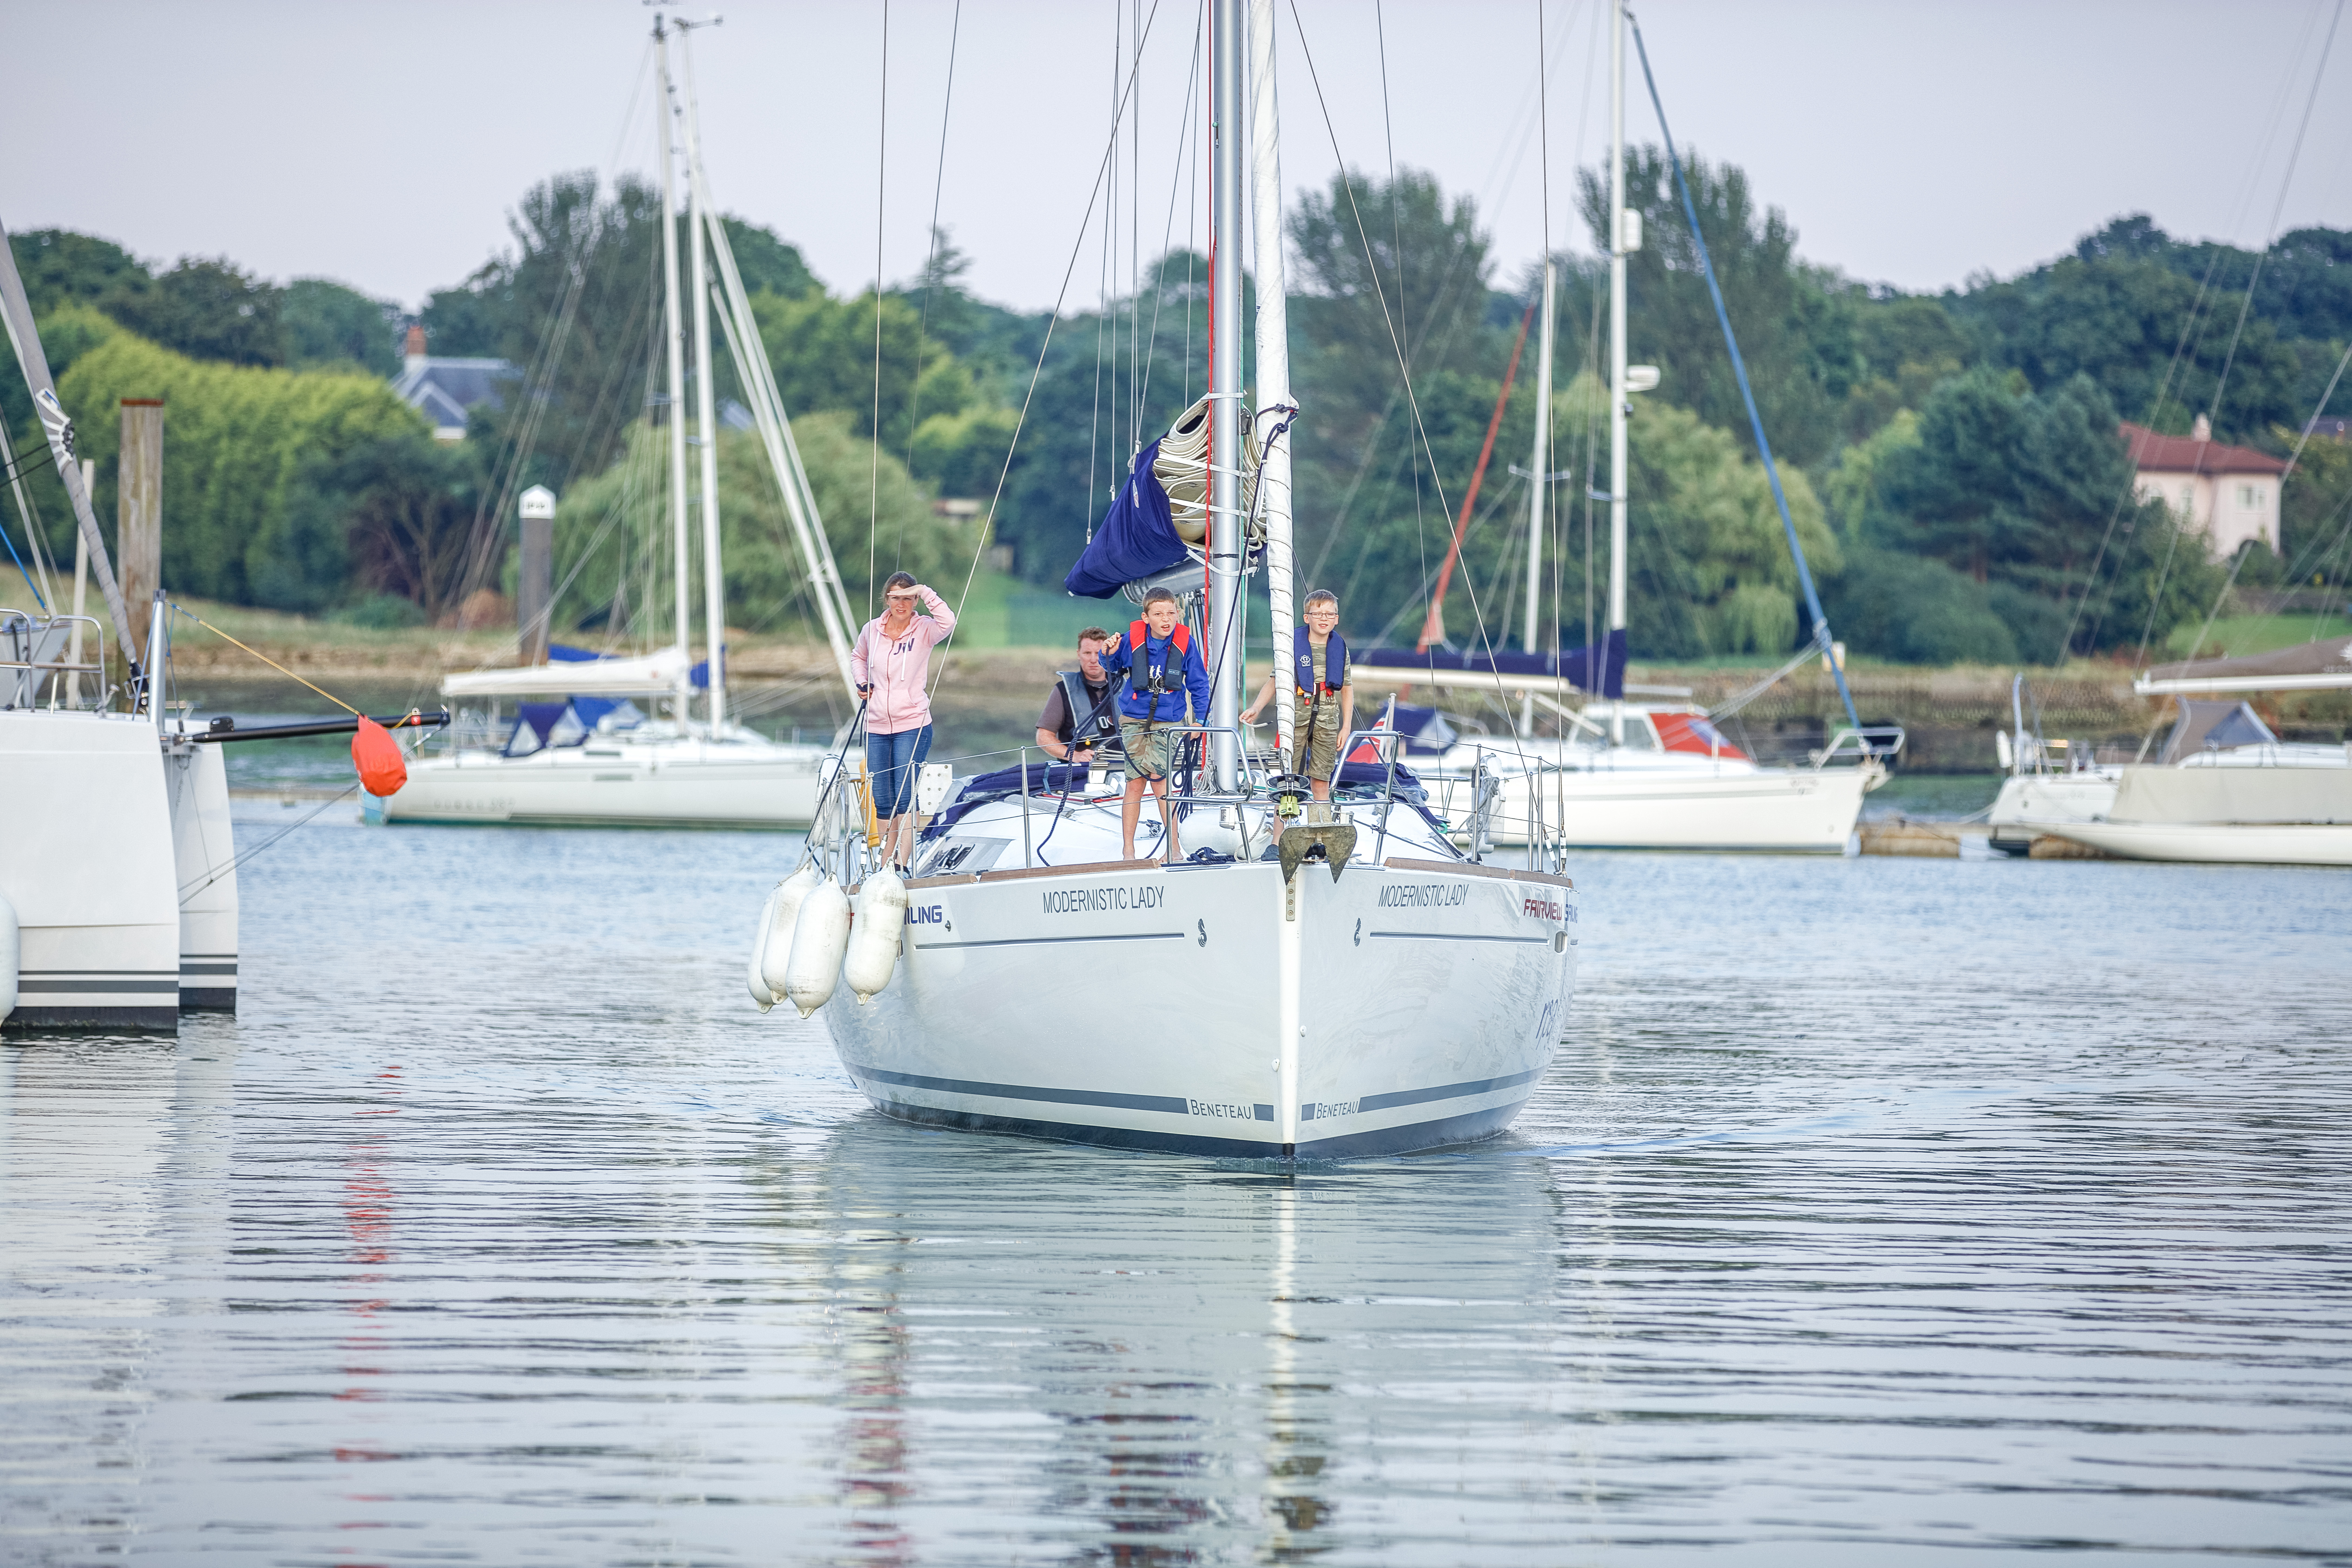 Boat handling course